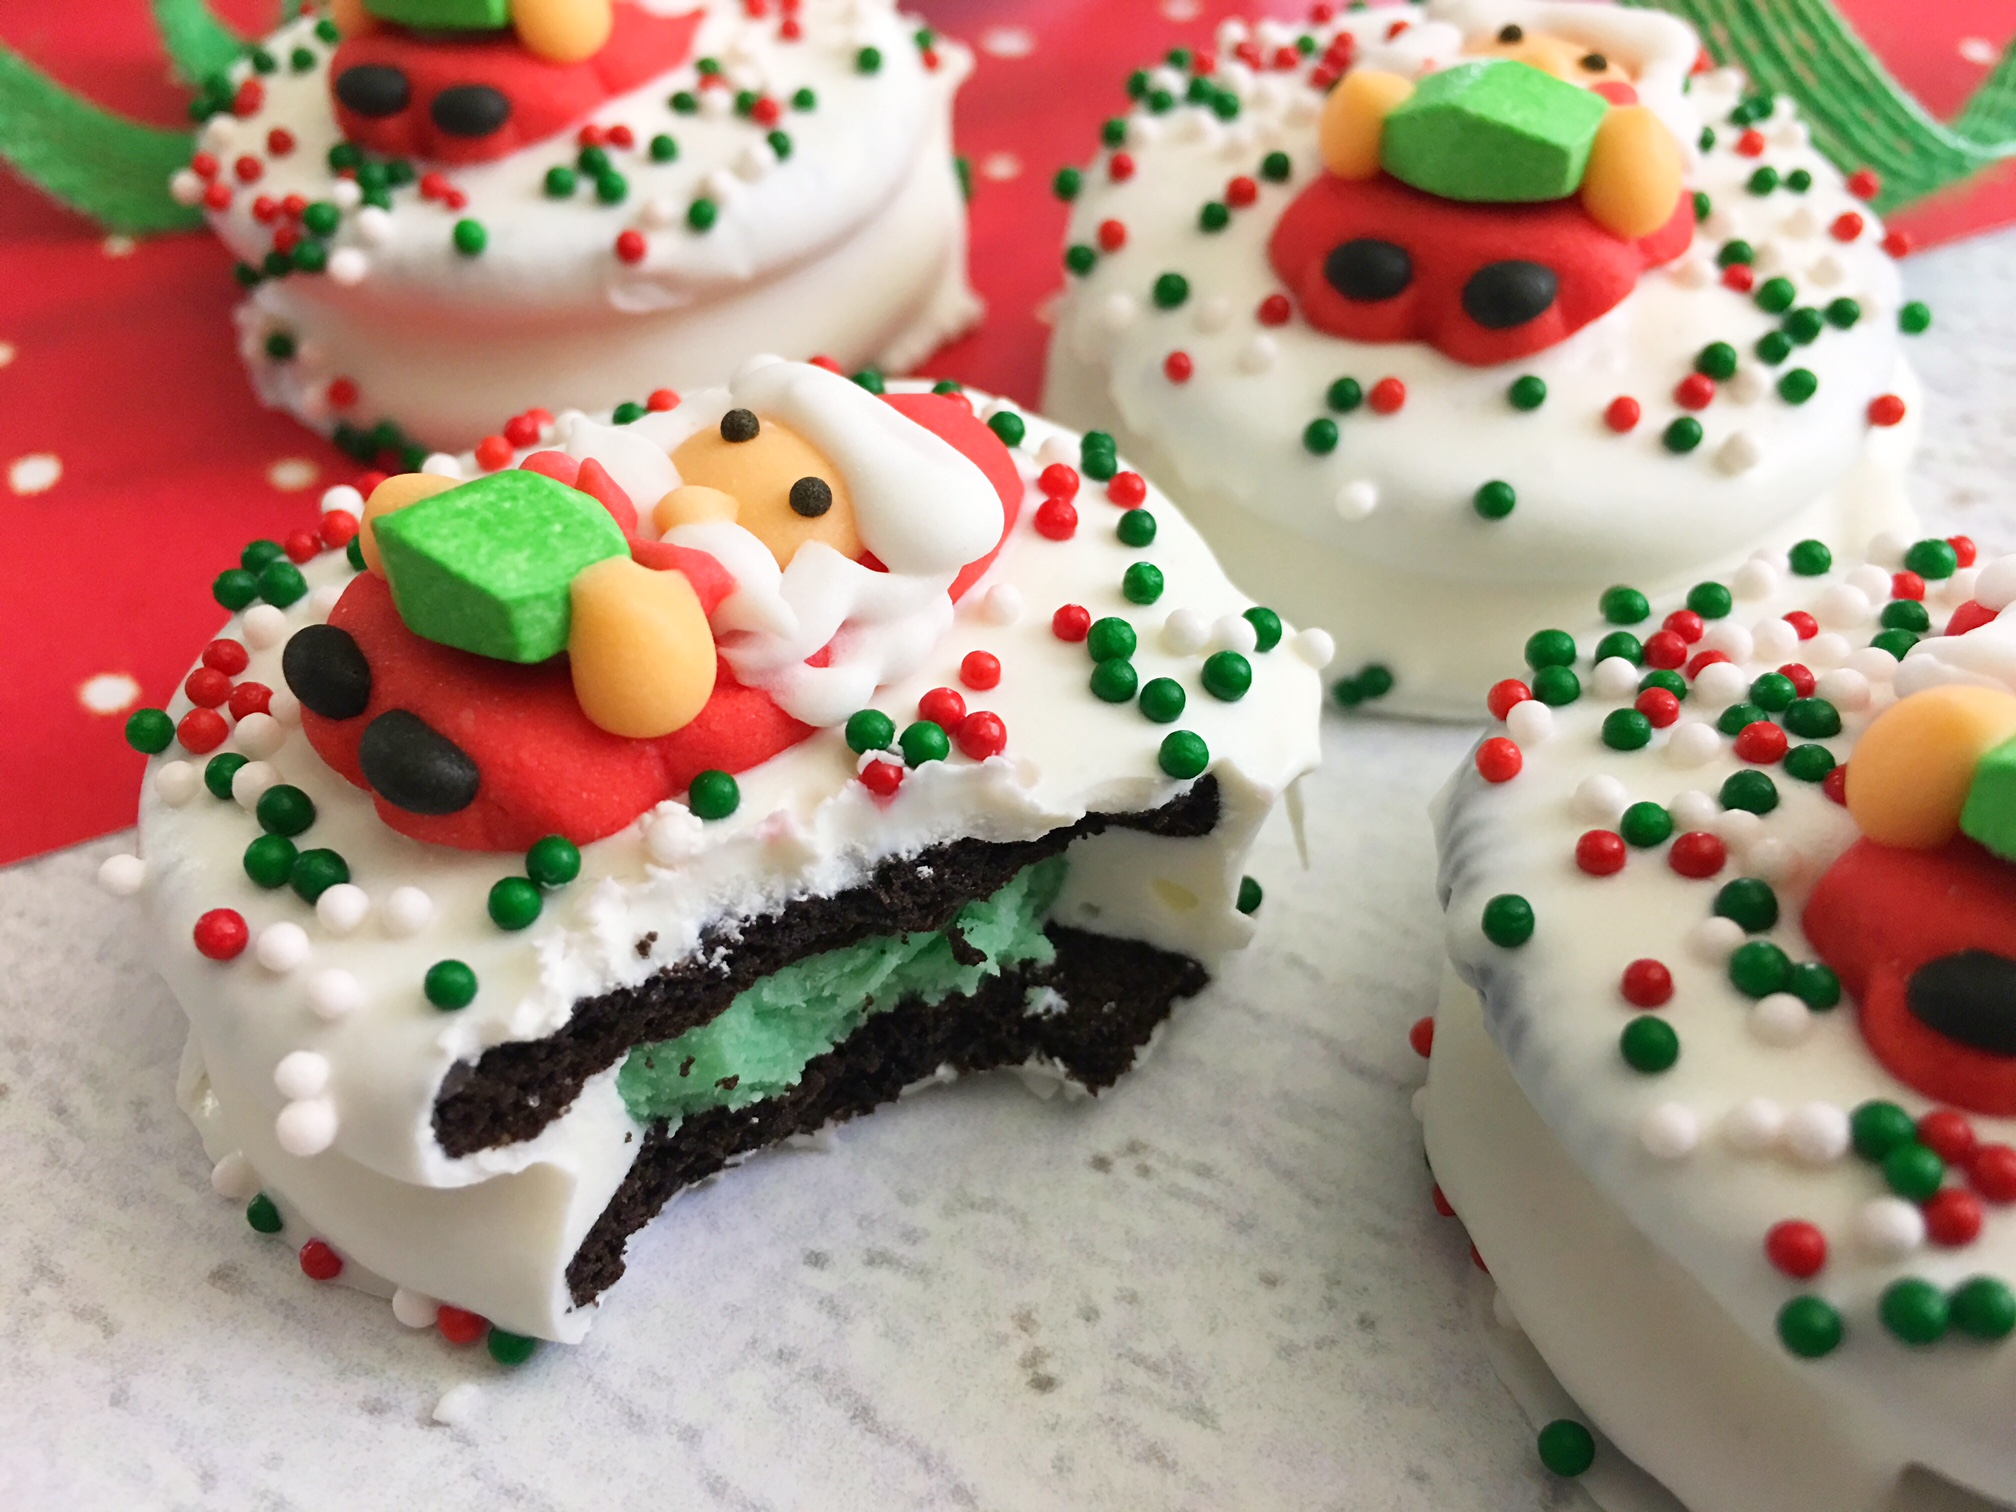 Oreo Christmas Cookies, Holiday Cookies, Santa Christmas Cookies, Dipped Oreo Cookies, Festive Christmas Cookies, Holiday Baking